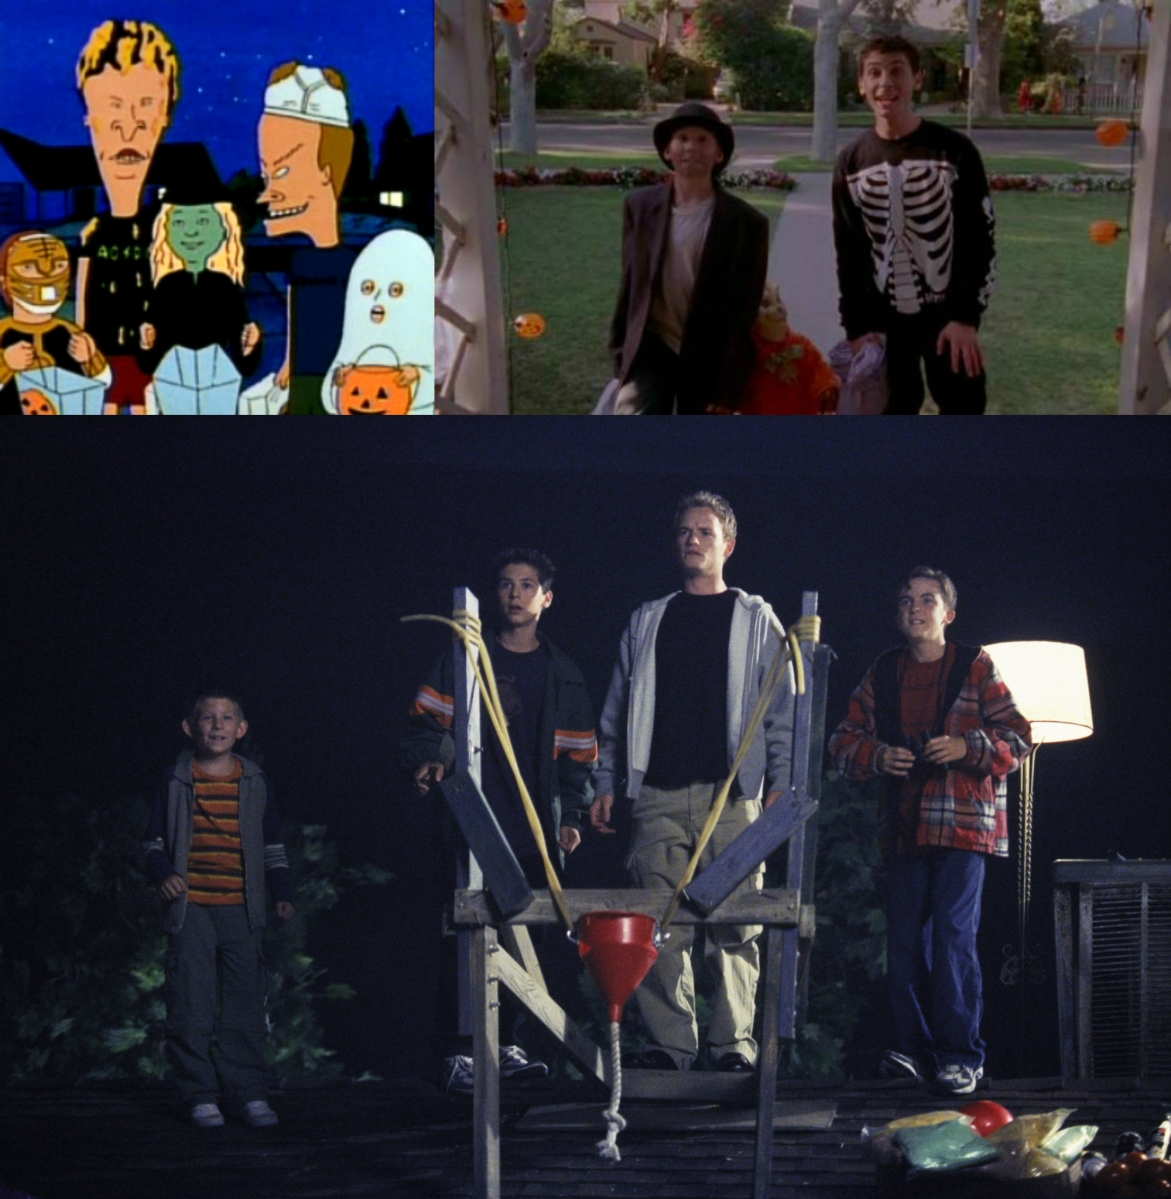 halloween on tv: beavis and butt-head and malcolm in the middle (31